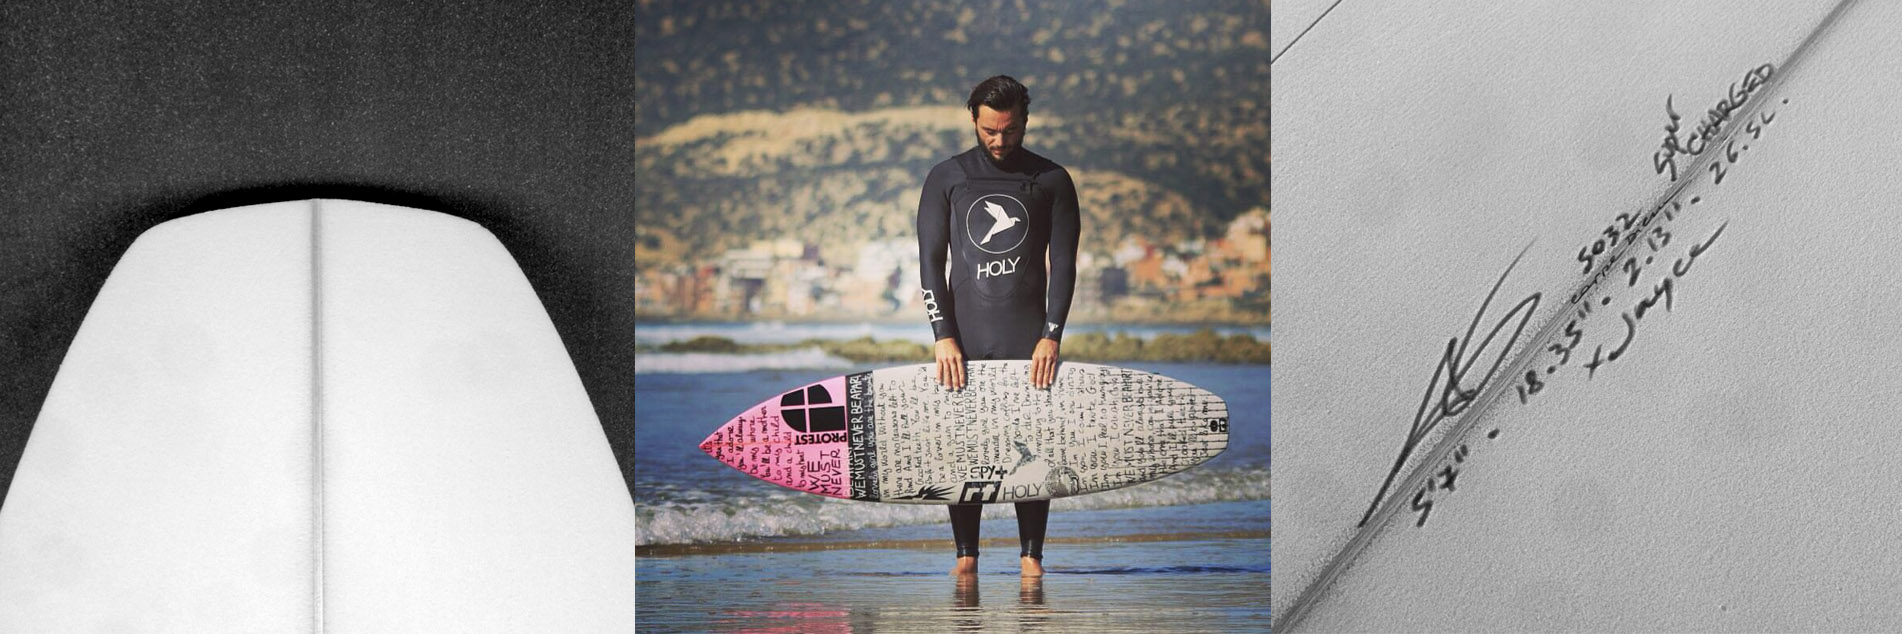 RTSurfboards_supercharged-04